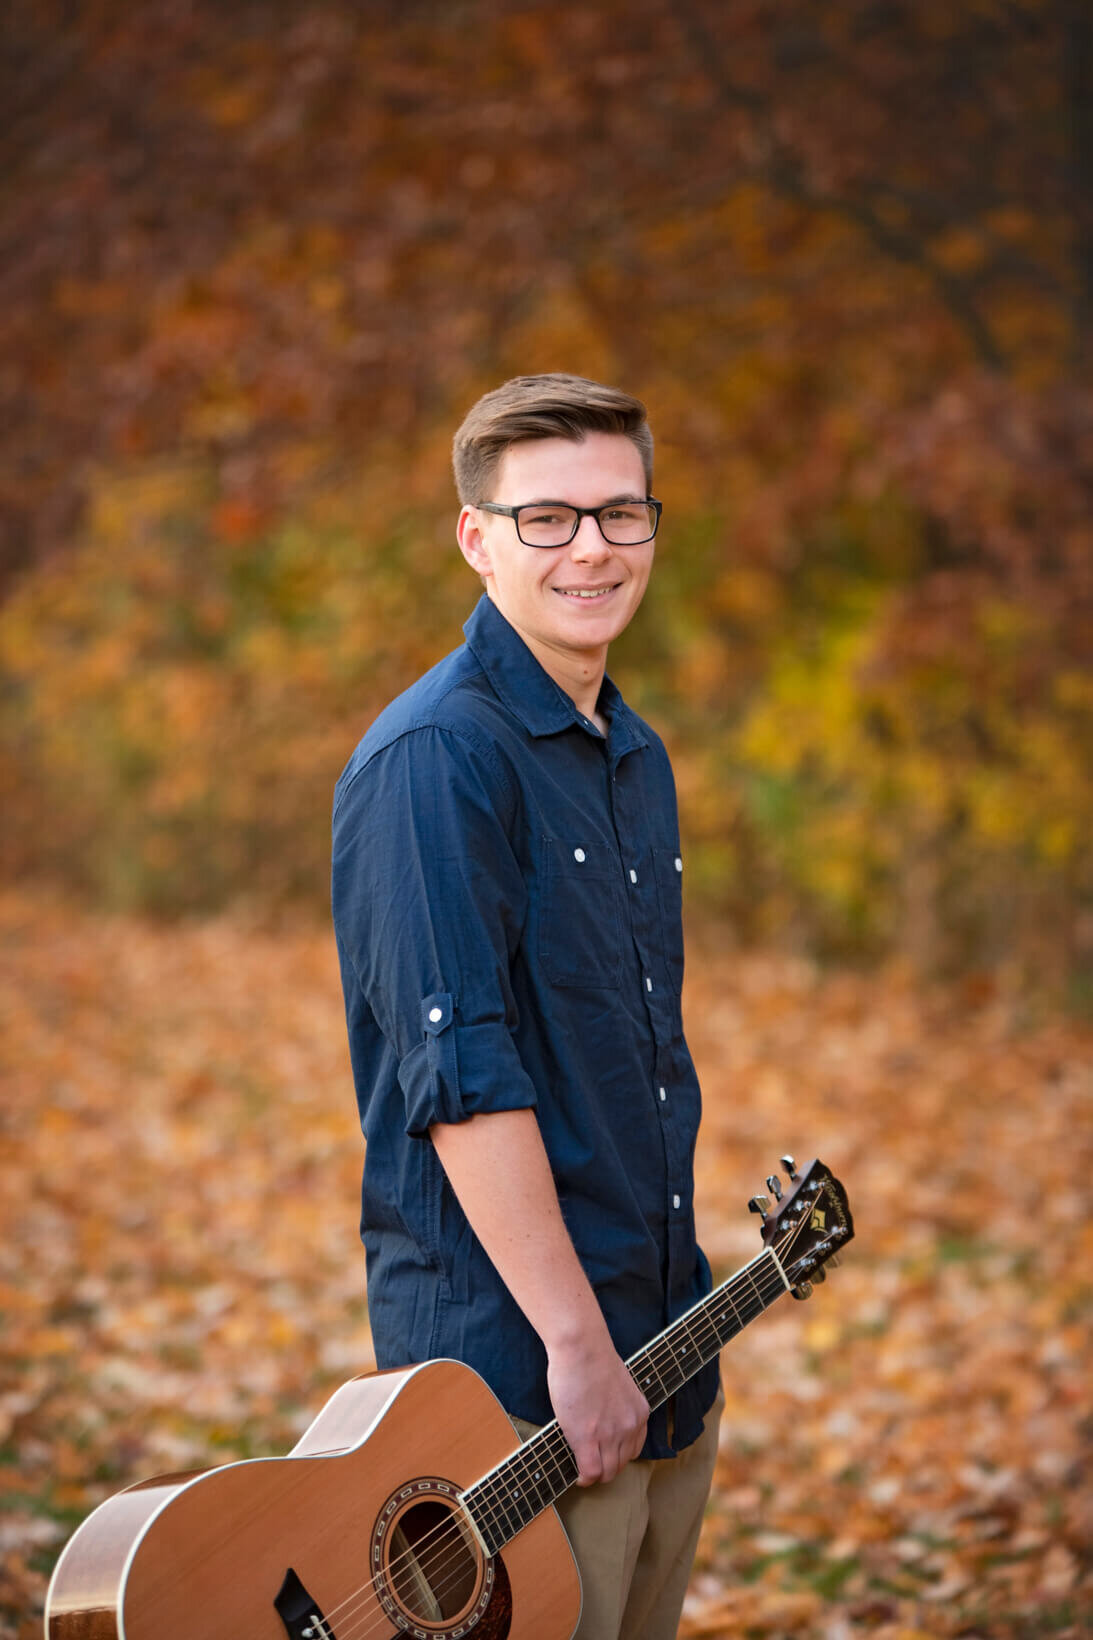 Senior-Portraits-Richfield-Historical-Park-Wisconsin-53